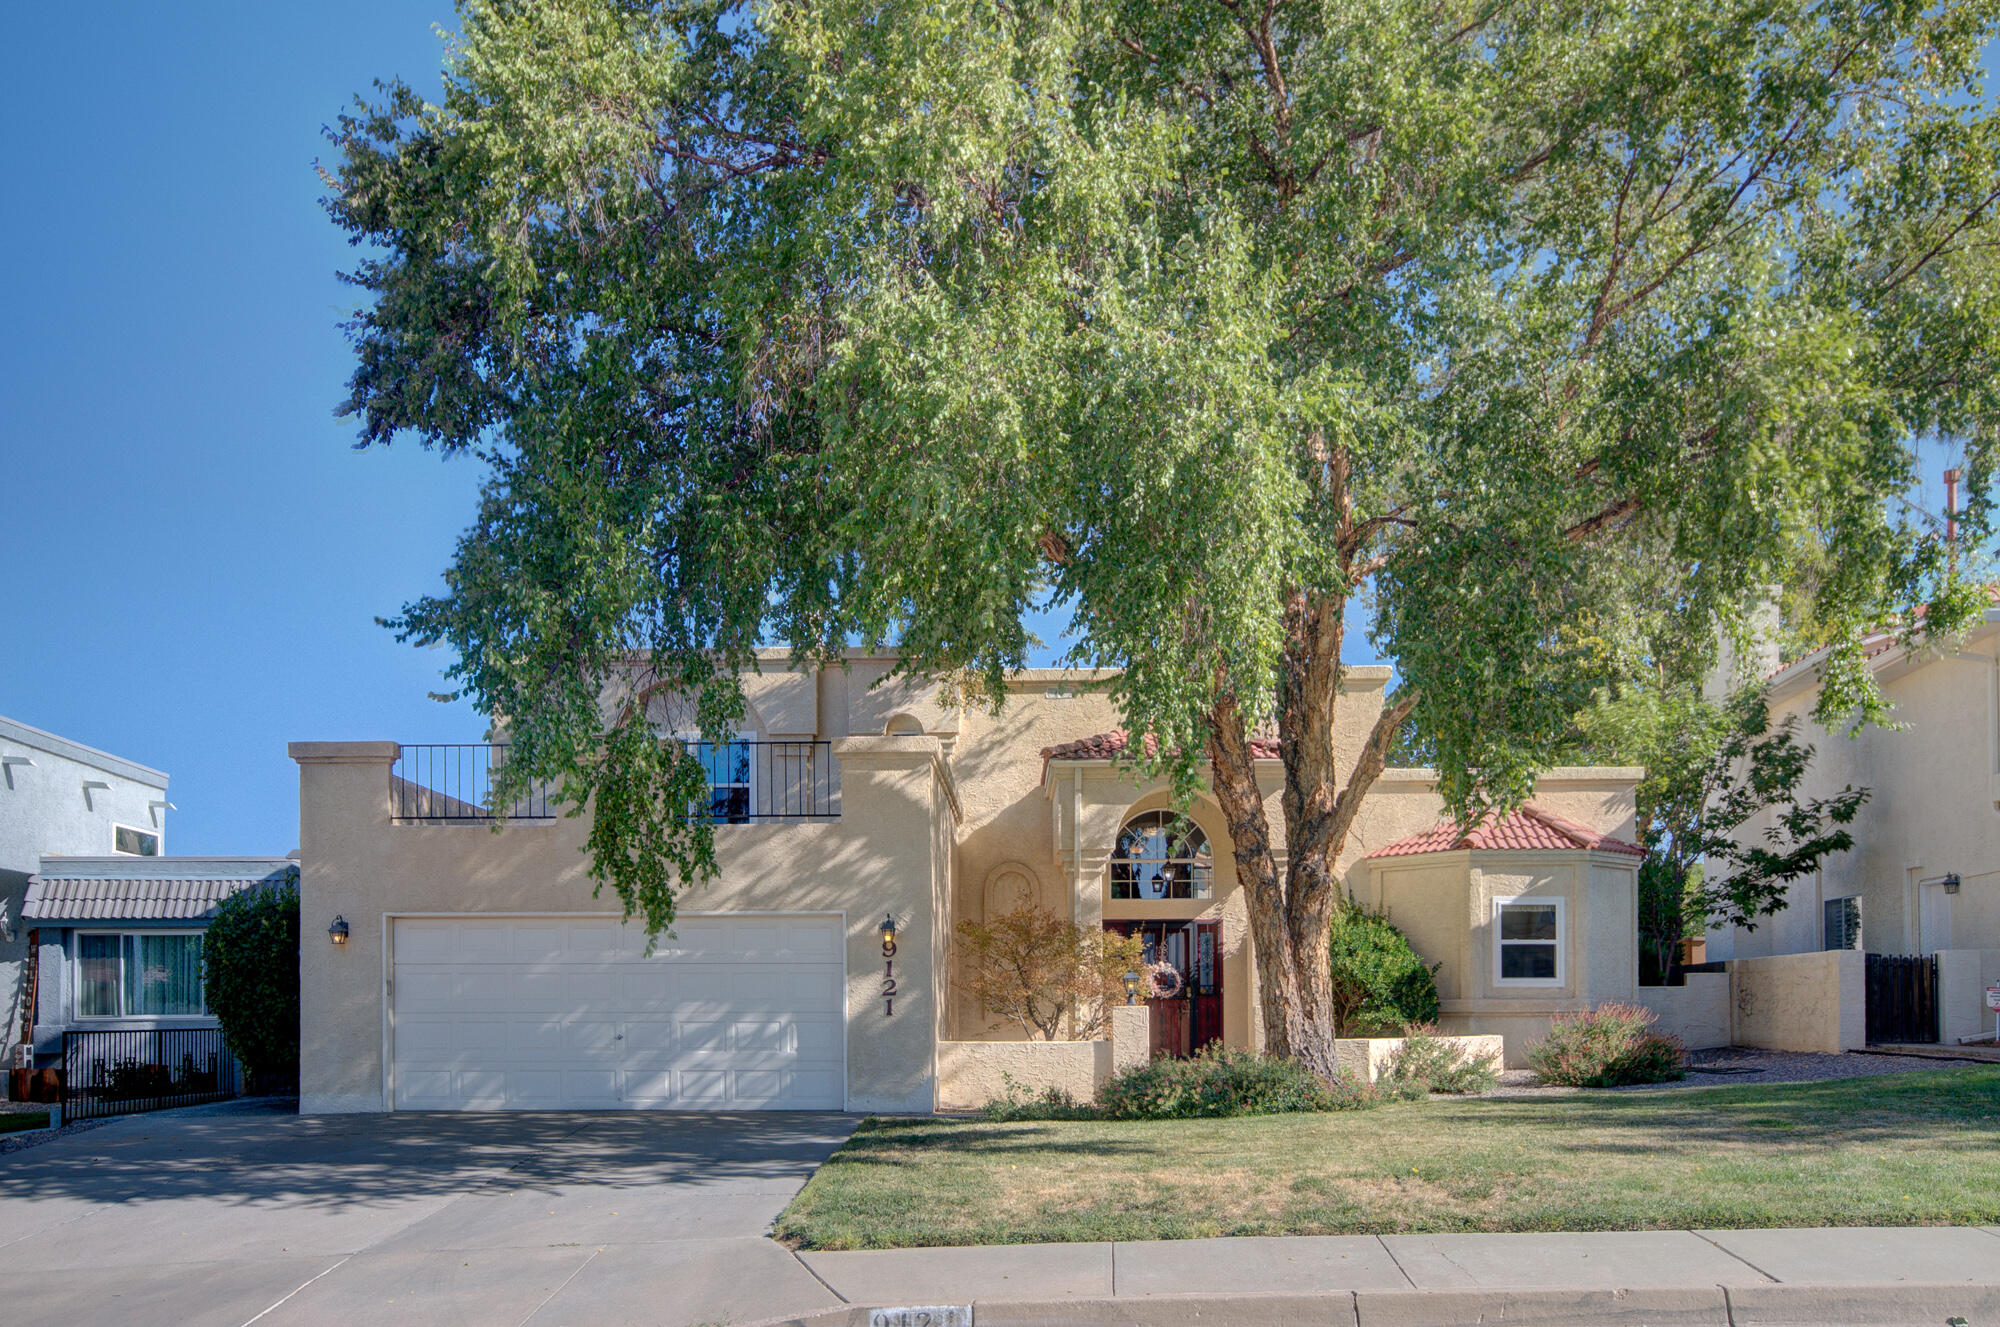 Located in the Carriage Estates enclave within the Heritage East neighborhood and La Cueva H/S district, this wonderful home offers everything you are seeking in your next home: 3-4 Bedrooms, 2 3/4 Bas, Great Rm with fireplace and raised ceiling, a step saver kitchen with tons of cabinets and huge pantry, and a finished and heated basement with multi-purpose room (gym/office/bedroom/game room/craft room) 3/4 bathroom and laundry room. Oversized garage with room for storage.  Efficient Master Cool unit. Lovely lush landscaping.   Enjoy the outdoors on your covered patio and balcony off loft area.Close to shopping (Trader Joe's) and restaurants with easy access to I-25 .Schedule your appointment now to view your next home.   Hurry over!!